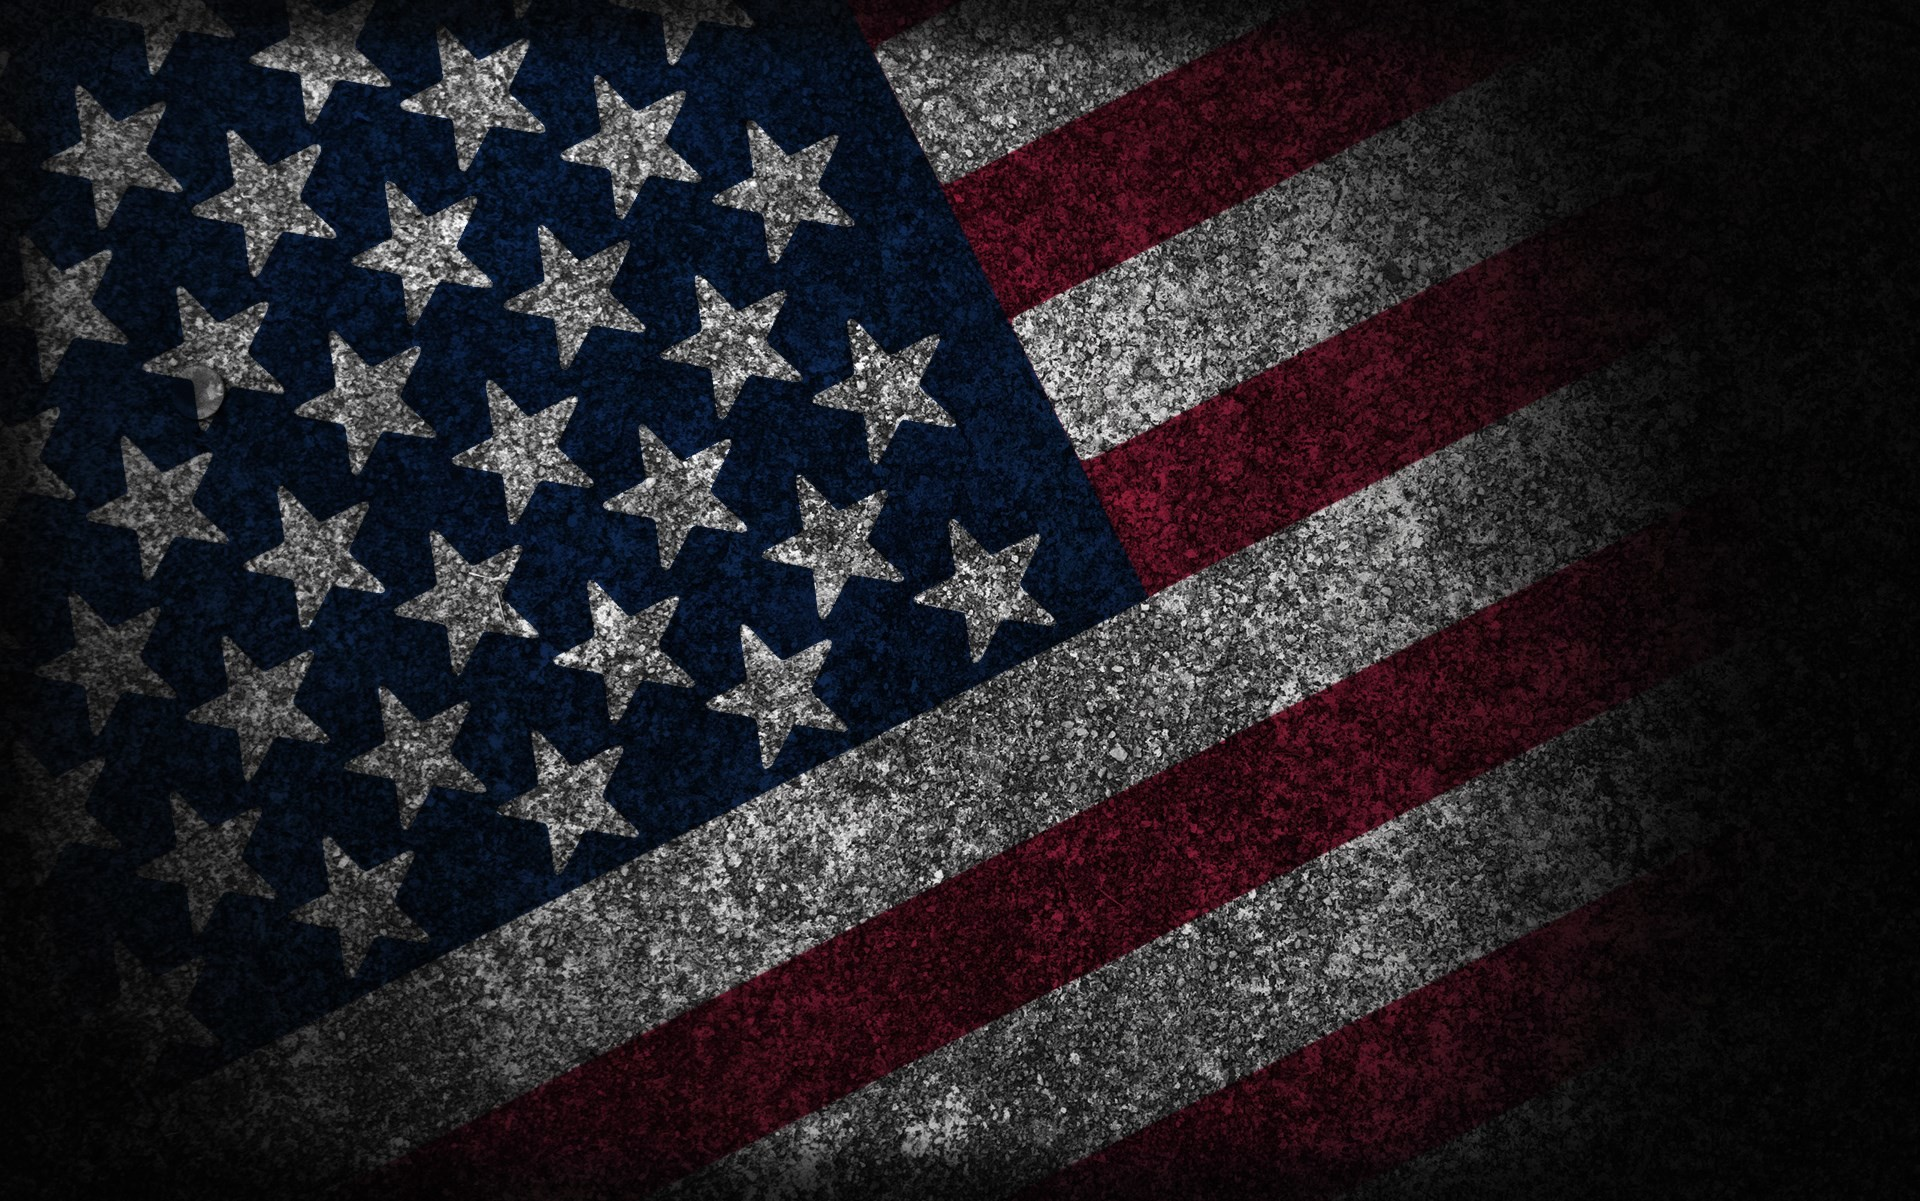 american flag wallpaper wpdopest Pictures Of American Flag Wallpapers  Wallpapers)